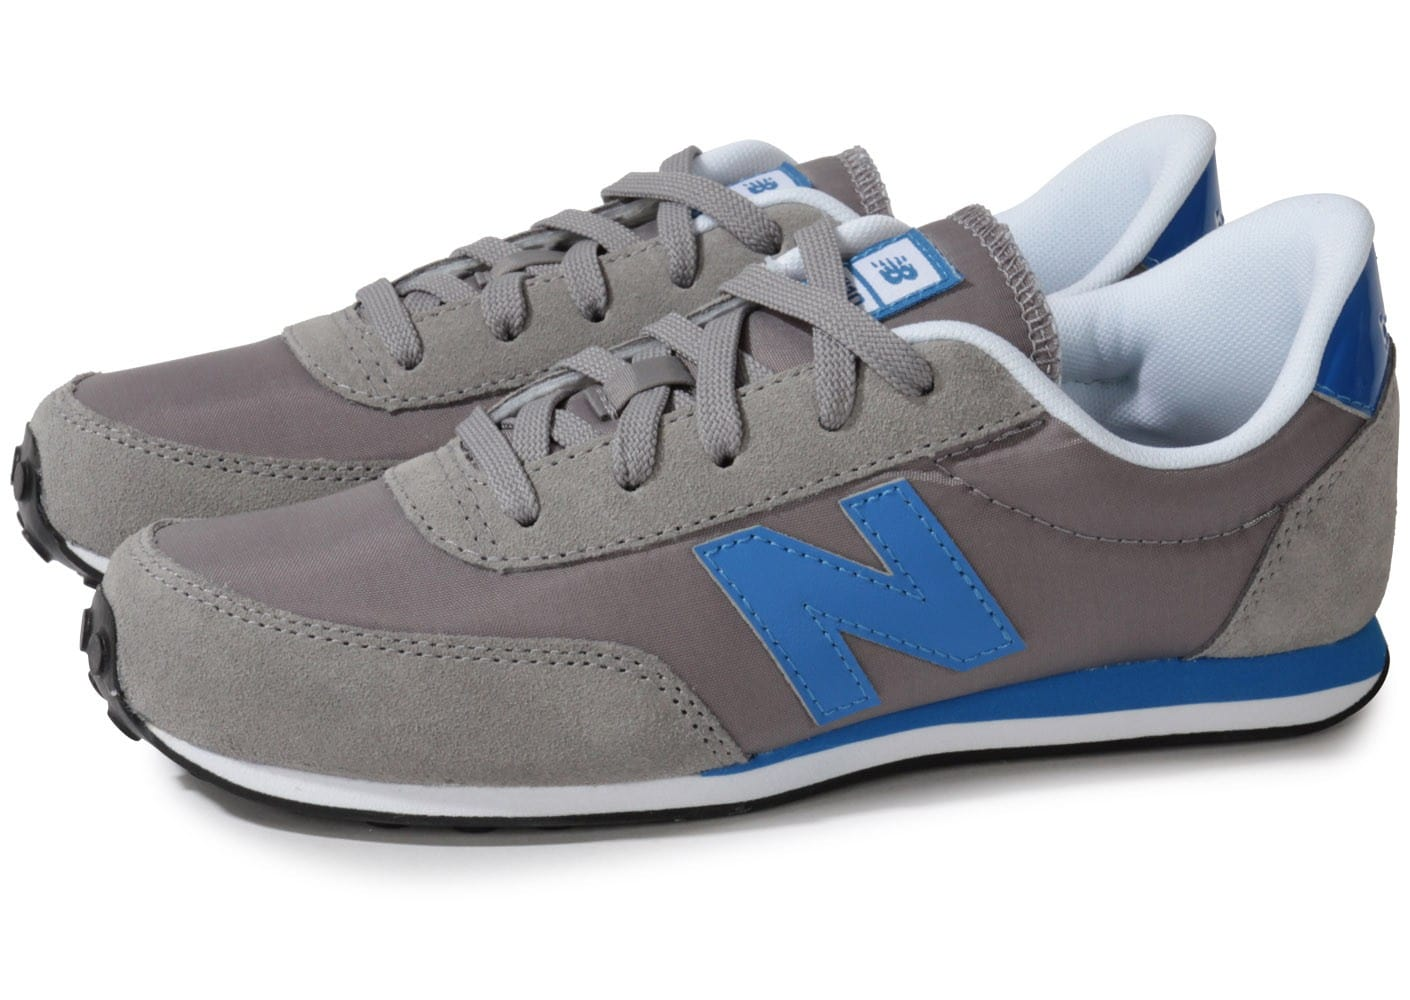 new balance kl410 junior grise chaussures chaussures chausport. Black Bedroom Furniture Sets. Home Design Ideas